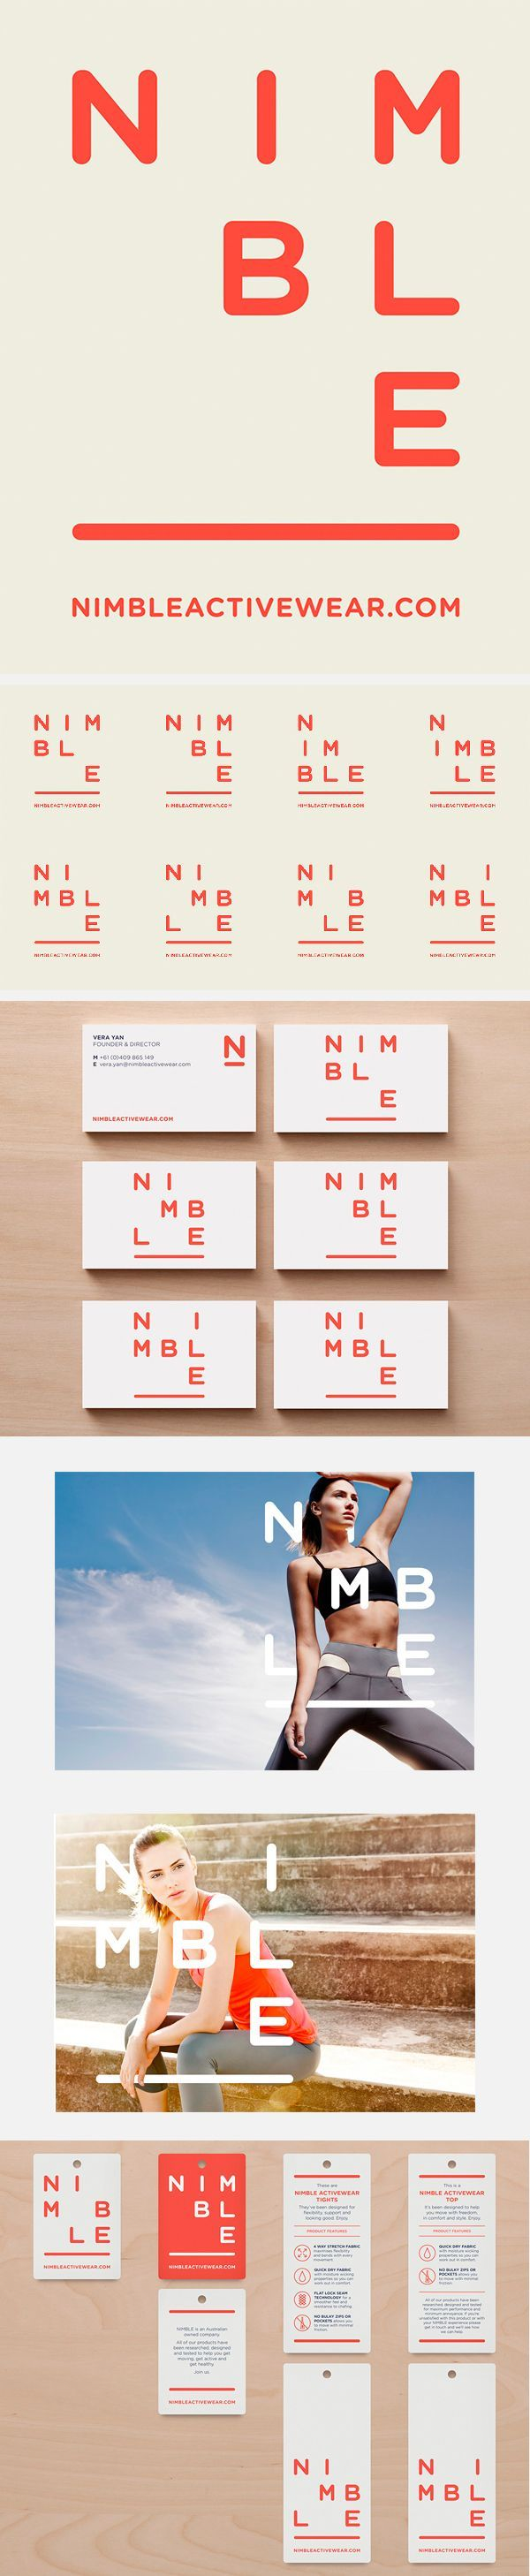 Nimble activewear brand ID  Like how the logo has multiple permutations, and embodies the brand name